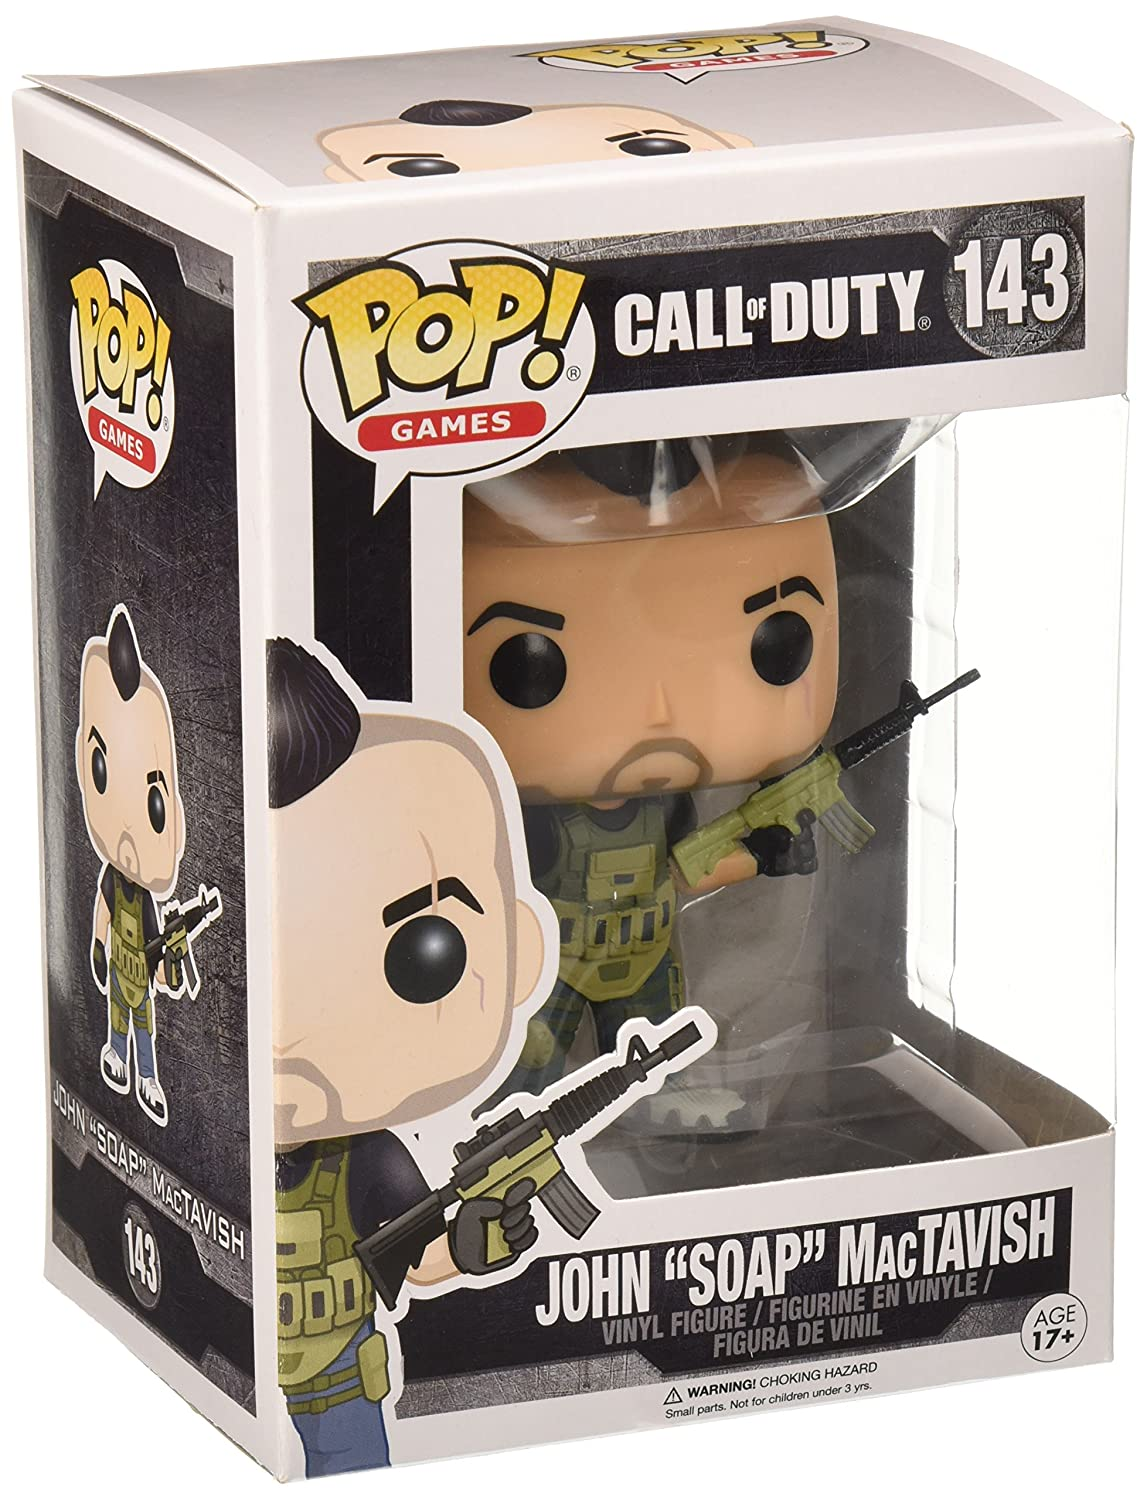 Funko Call of Duty John SOAP MacTavish Pop Games Figure